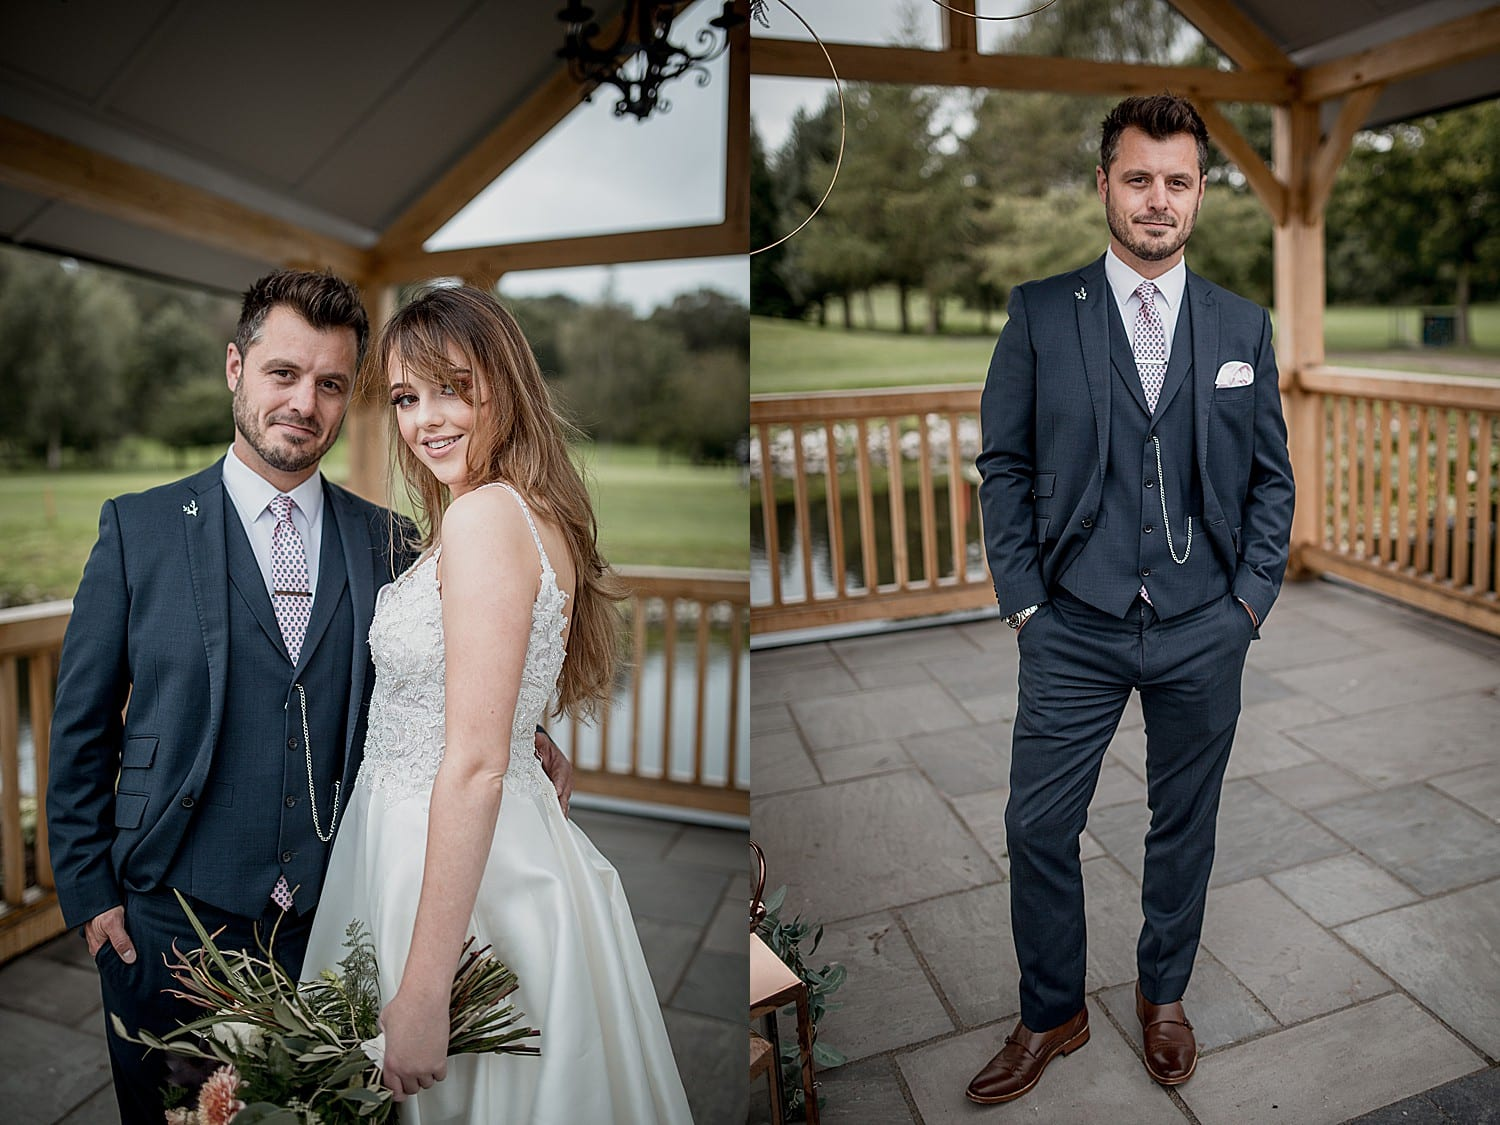 northwich wedding photographer